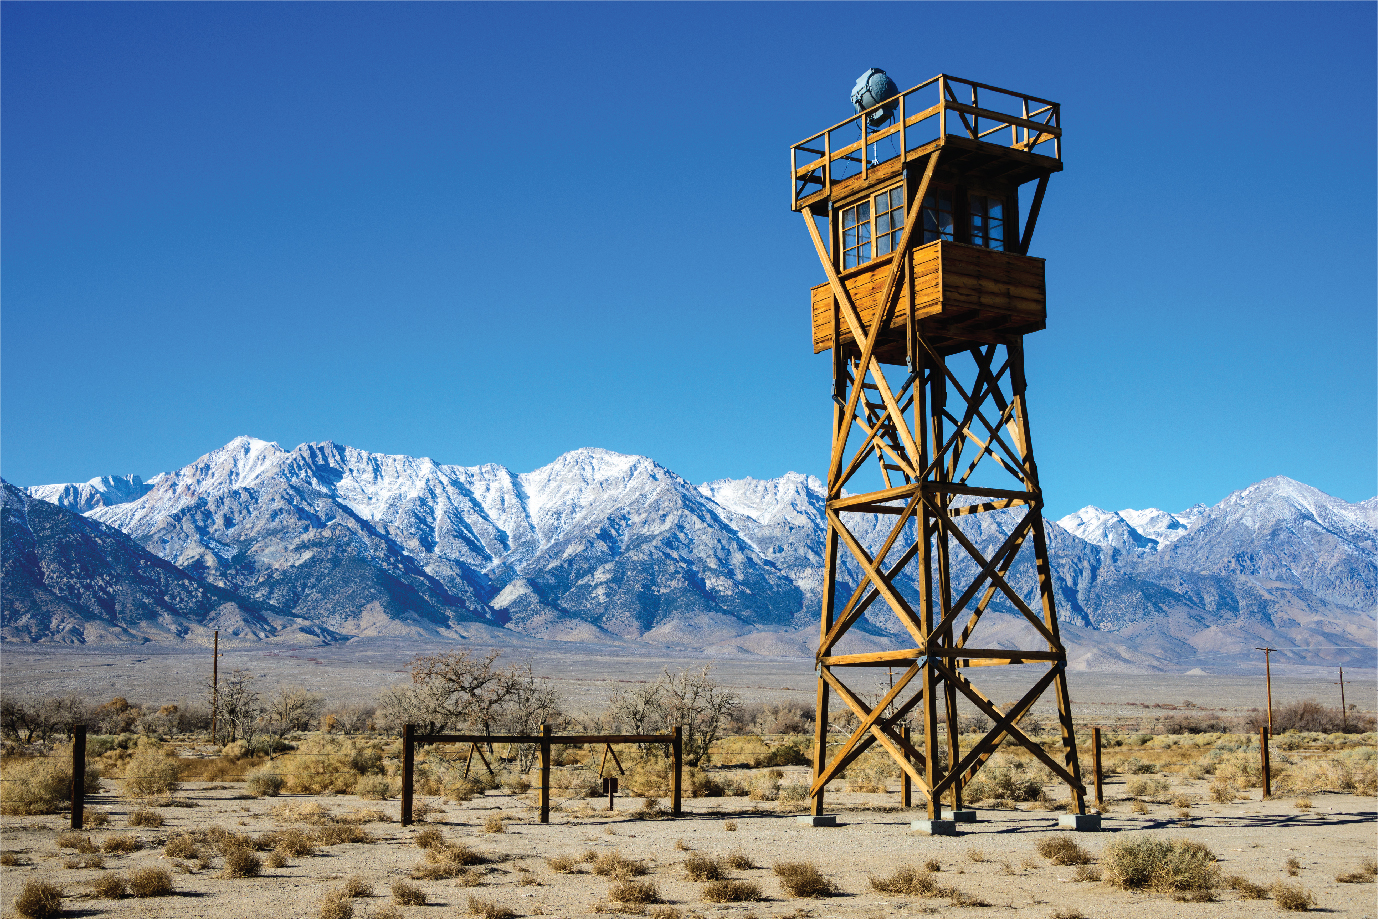 A guard tower on the border of a fenced camp in the desert.